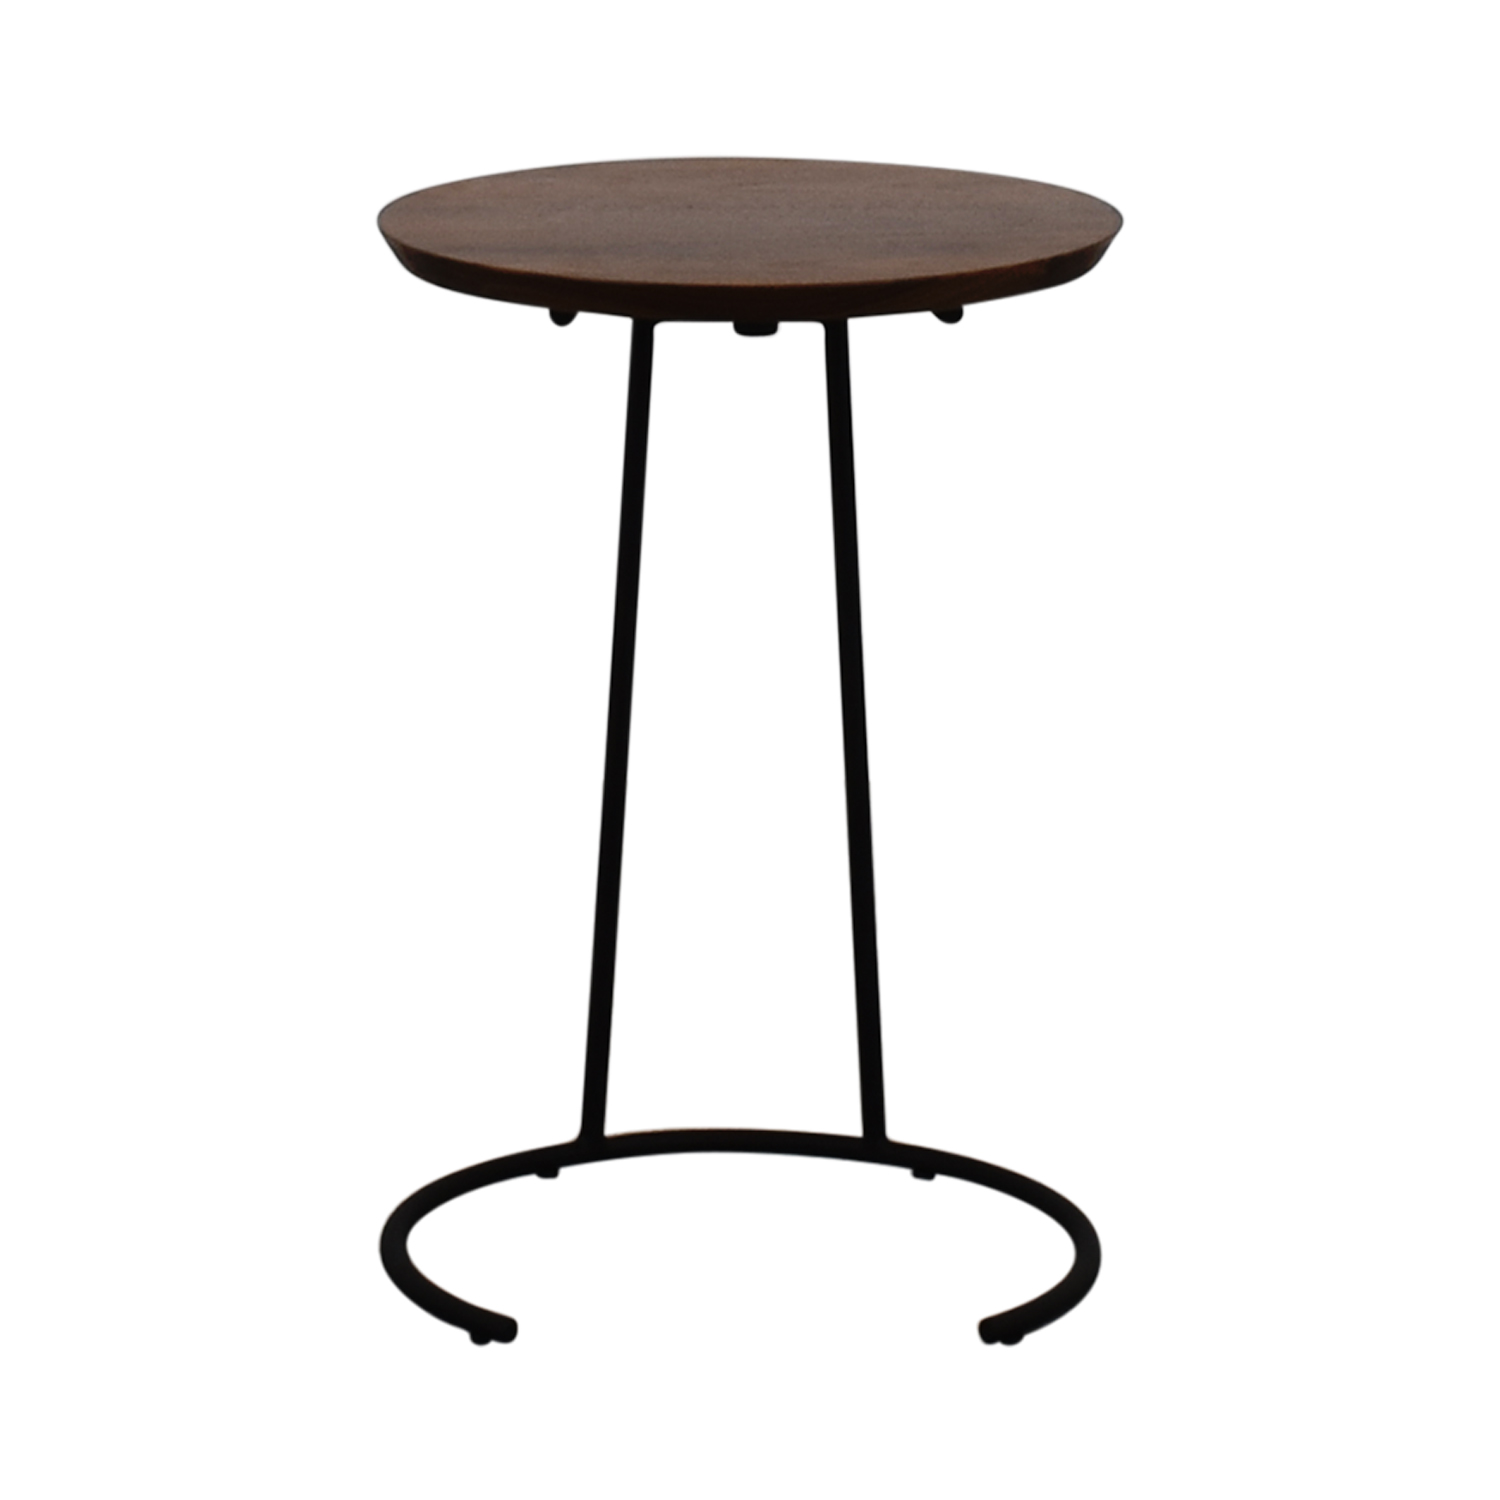 buy Design Within Reach Round Side Table Design Within Reach Tables